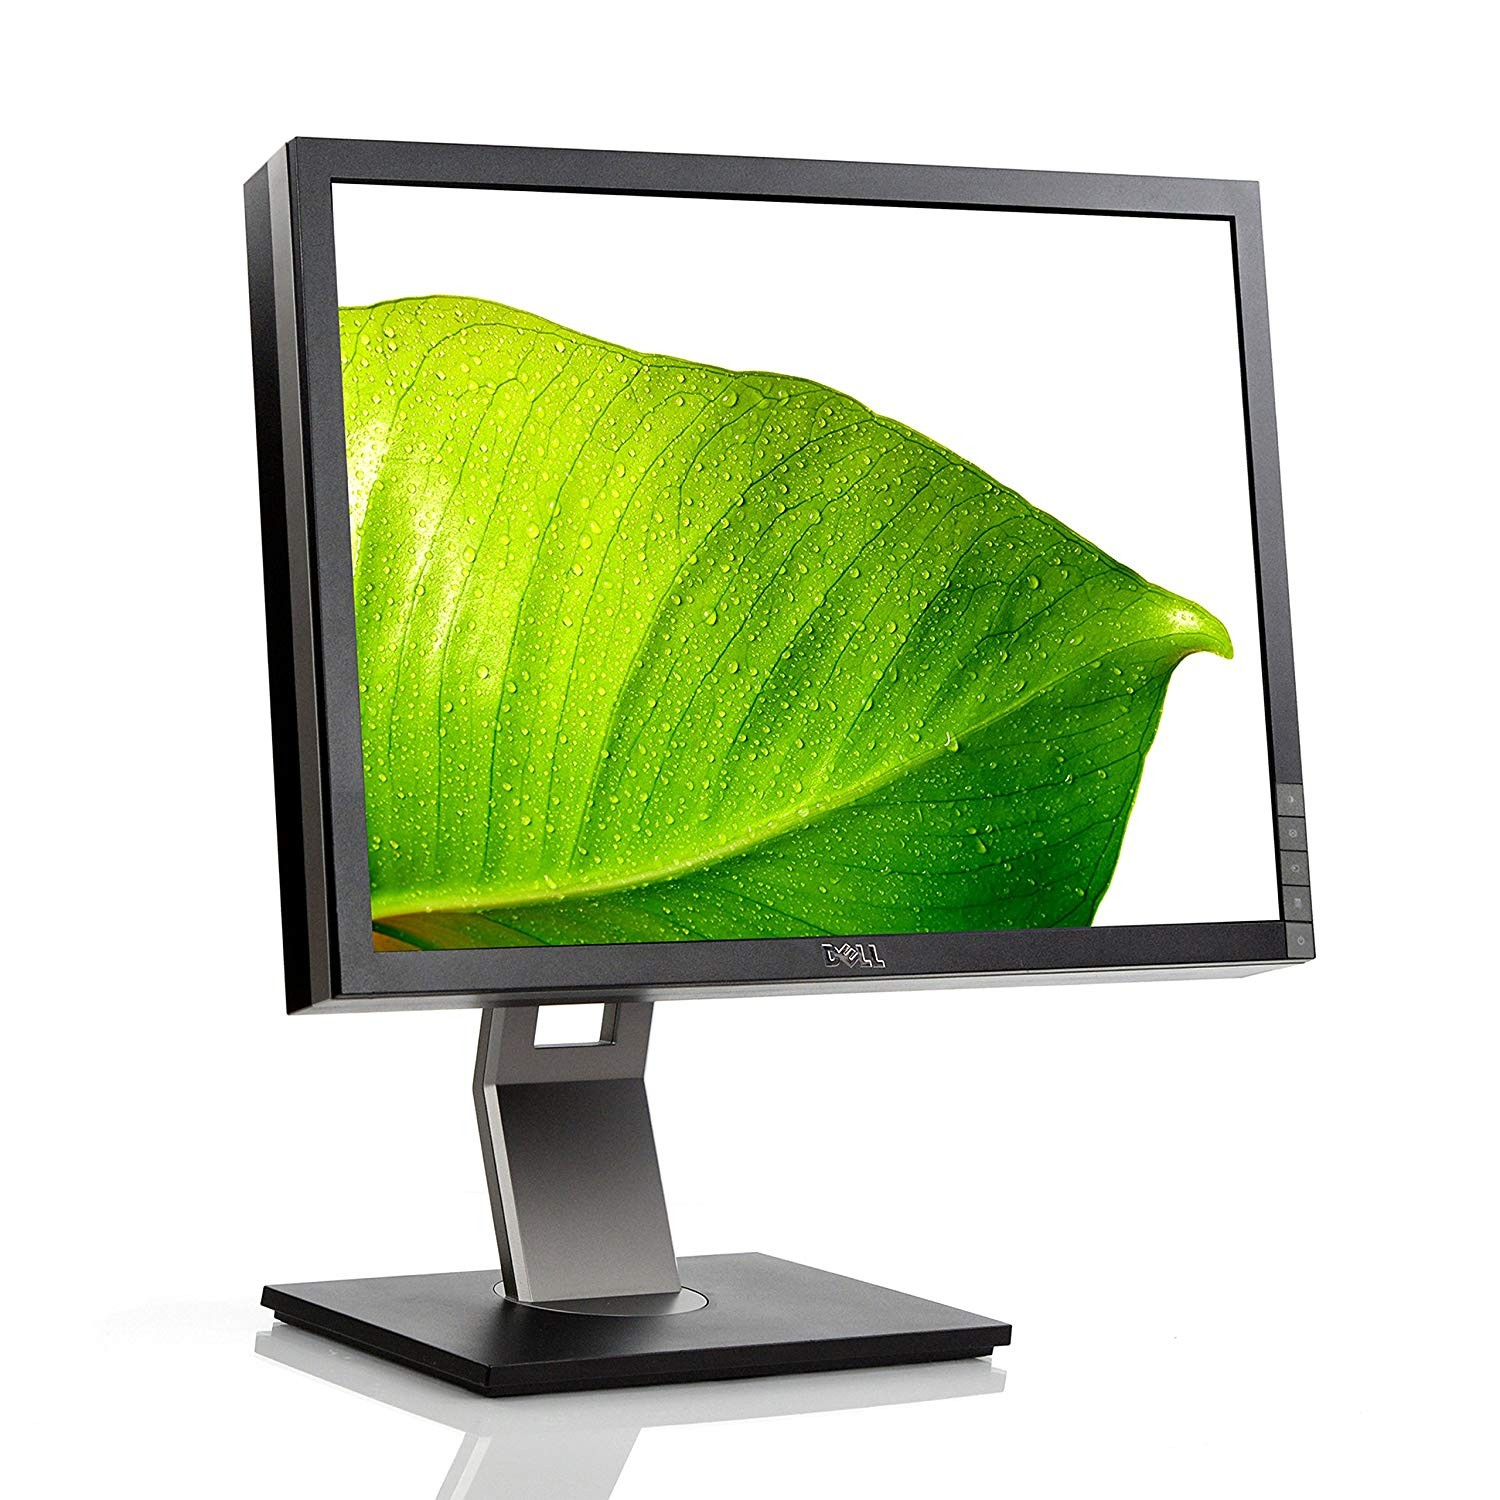 DEL-US-2209WAF-LCD-MON-22IN-Dell UltraSharp 2209WAF Refurbished LCD Monitor 1680×1050 Resolution 22-inch 1000:1 Contrast300 cd/m2 Brightness-image